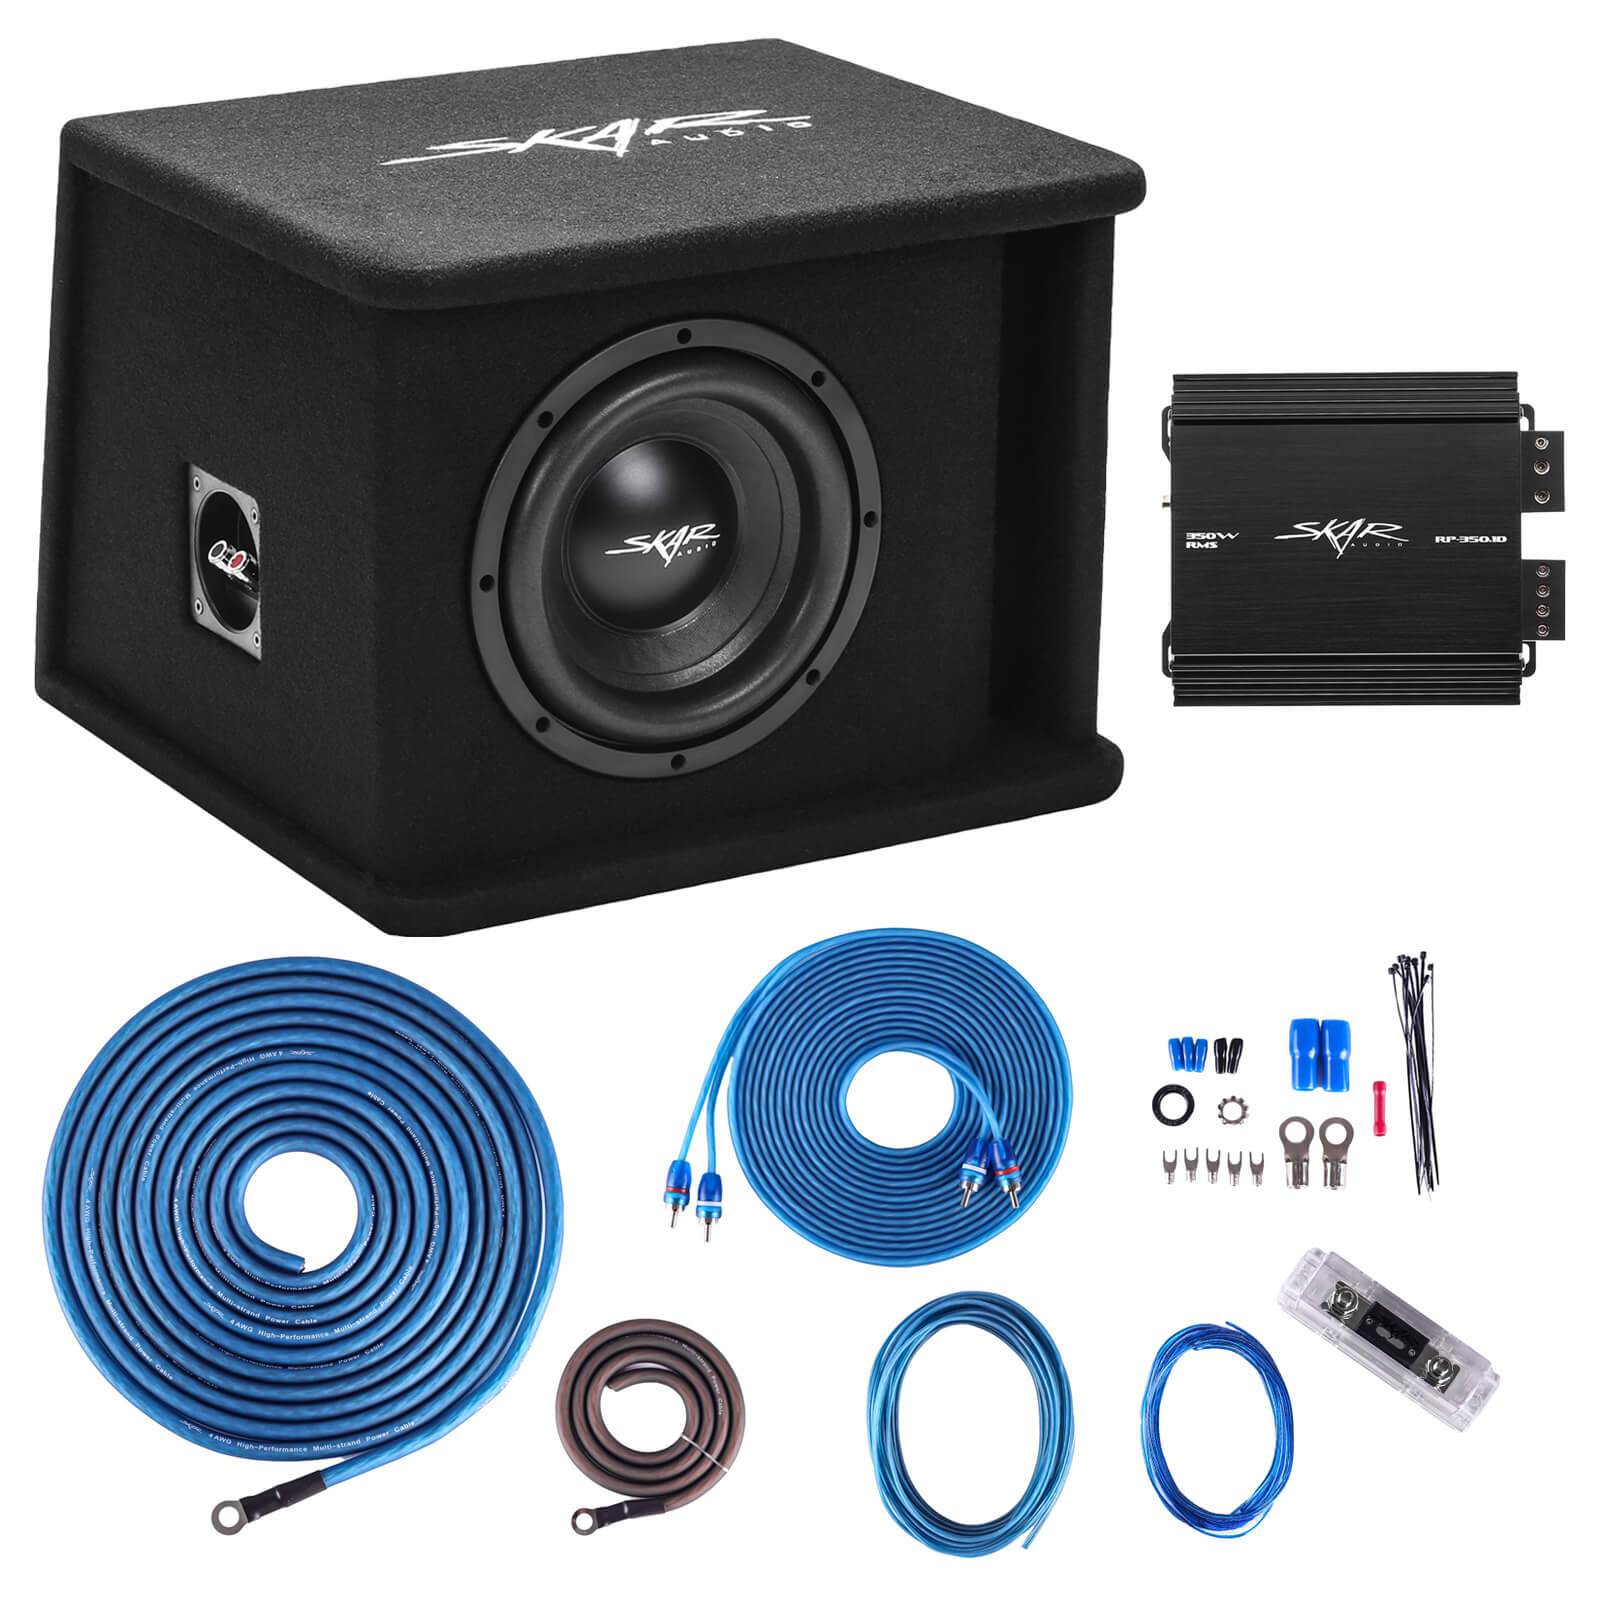 "Skar Audio Single 8"" 700 Watt SDR Series Complete Subwoofer Package with Vented Enclosure and Amplifier - Main View"